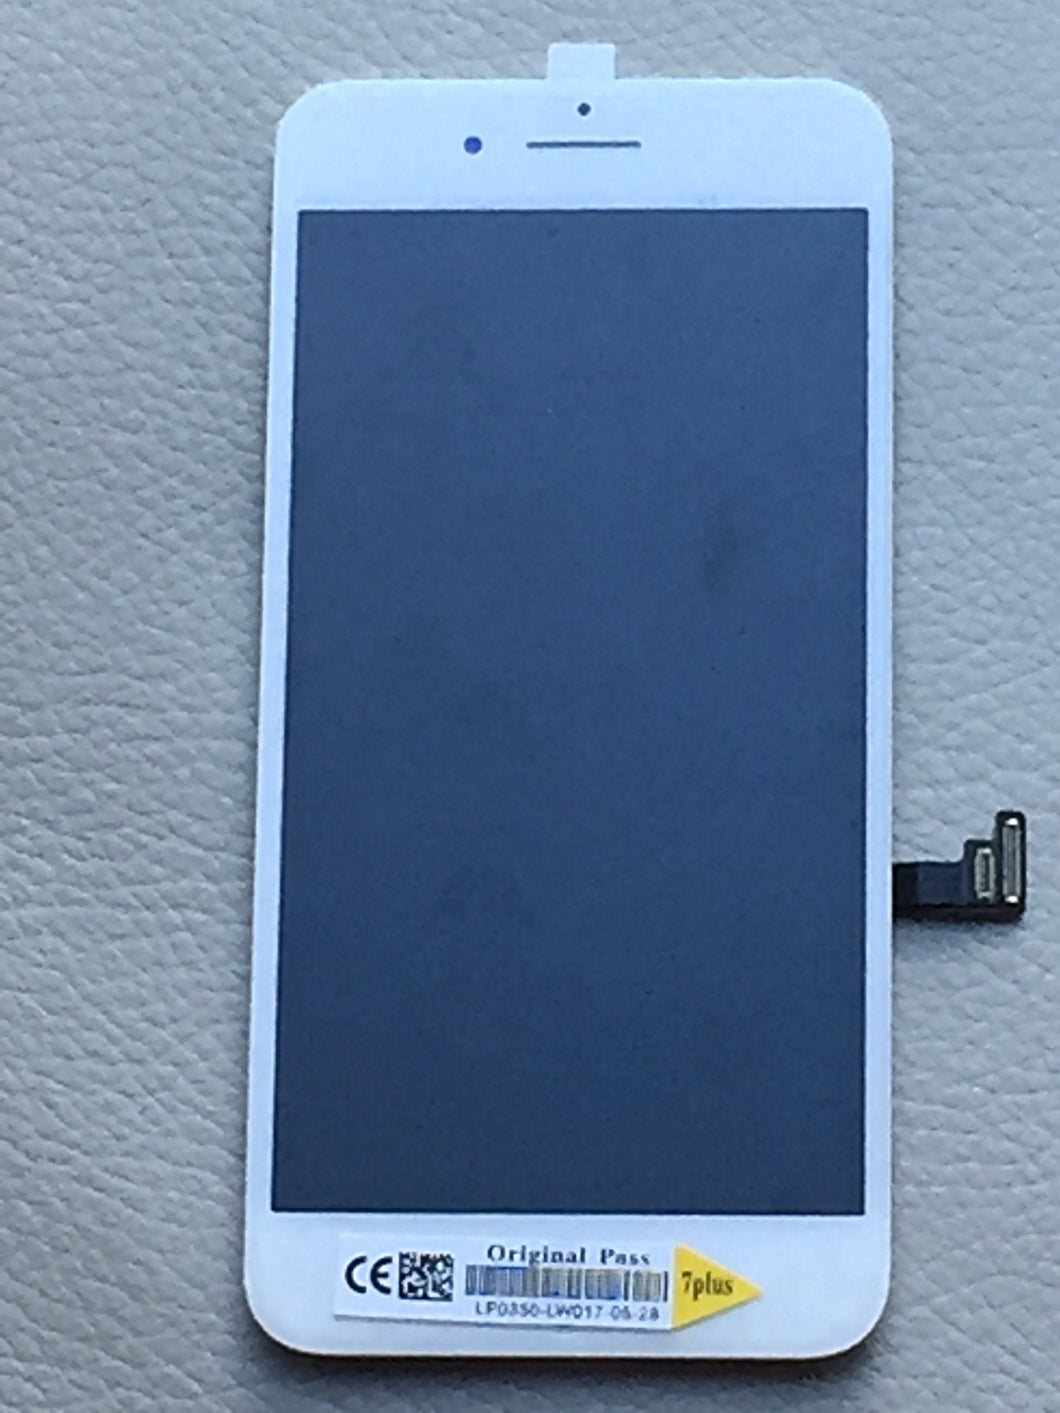 OEM Refurbished iPhone 7 Plus LCD Screen Digitizer -White - 2 Year Warranty